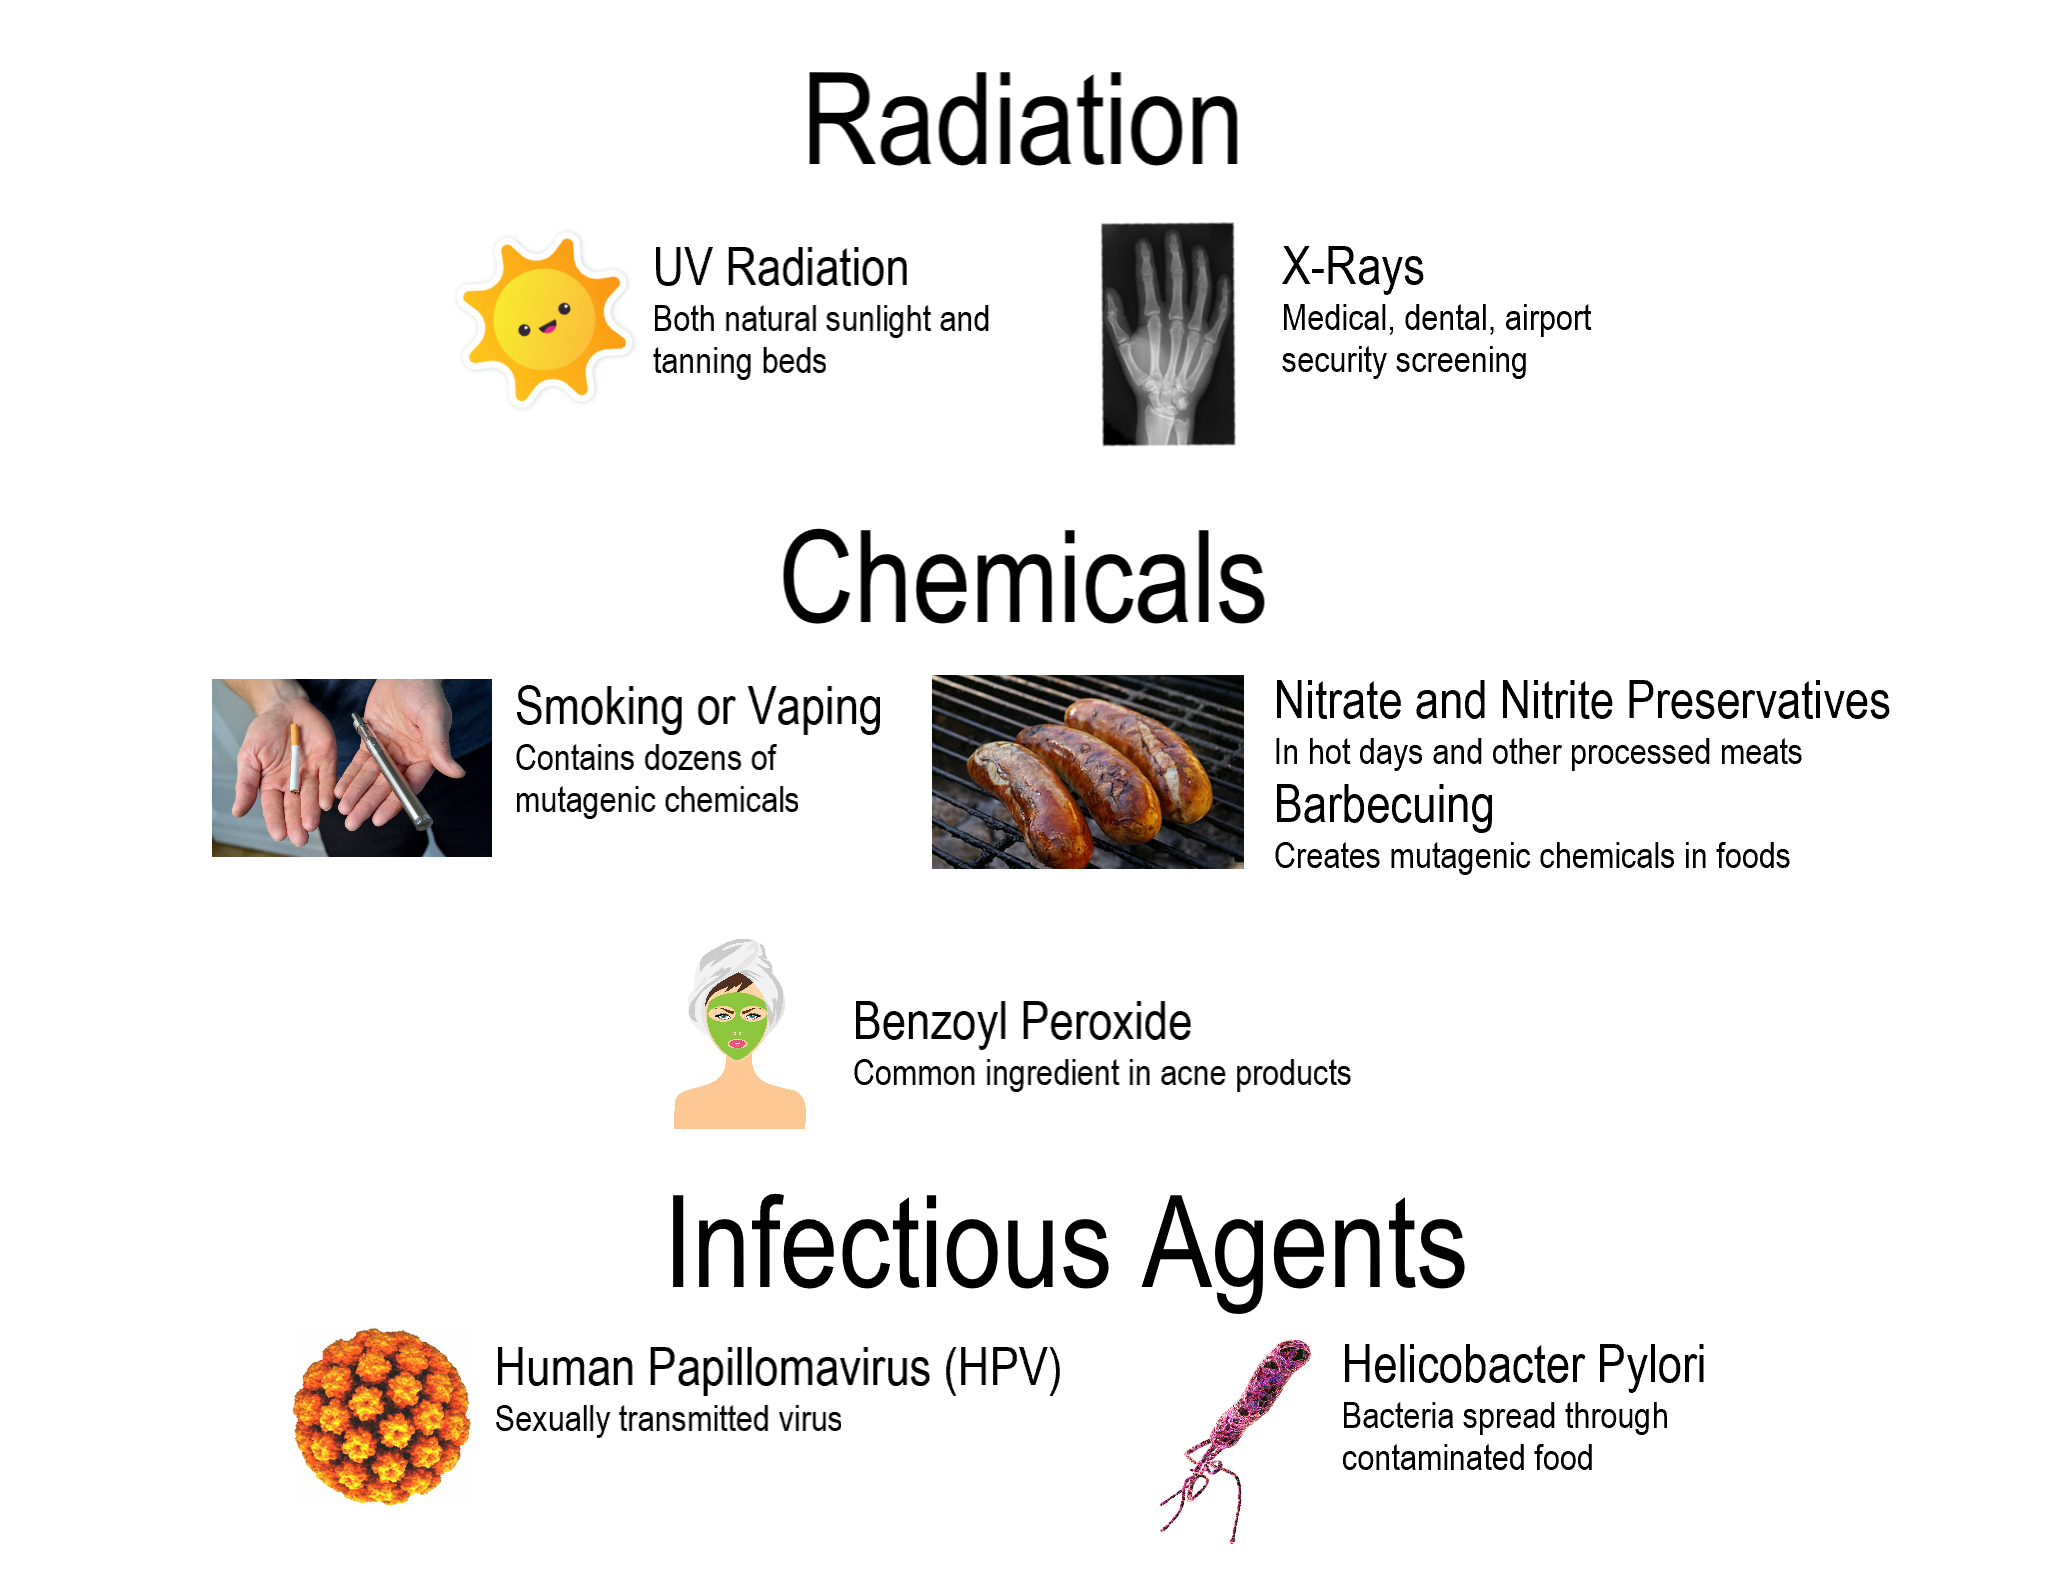 Examples of Radiation, chemicals and infectious agents: An mage of a sun icon and hand x-ray for UV and x-ray radiation; a picture of hands holding a cigarrette and a vape, 3 smokies on a grill (nitrates/ nitrites and mutagenic BBQ chemicals) and a stylized image of a woman in a green acne face mask with benzoyl peroxide to represent chemicals. To represent infectious agents: an orange spherical virus as human papillomavirus (HPV) and a purple spirilla bacterium with flagella for Helicobacter Pylori - a bacteria spread through contaminated food.